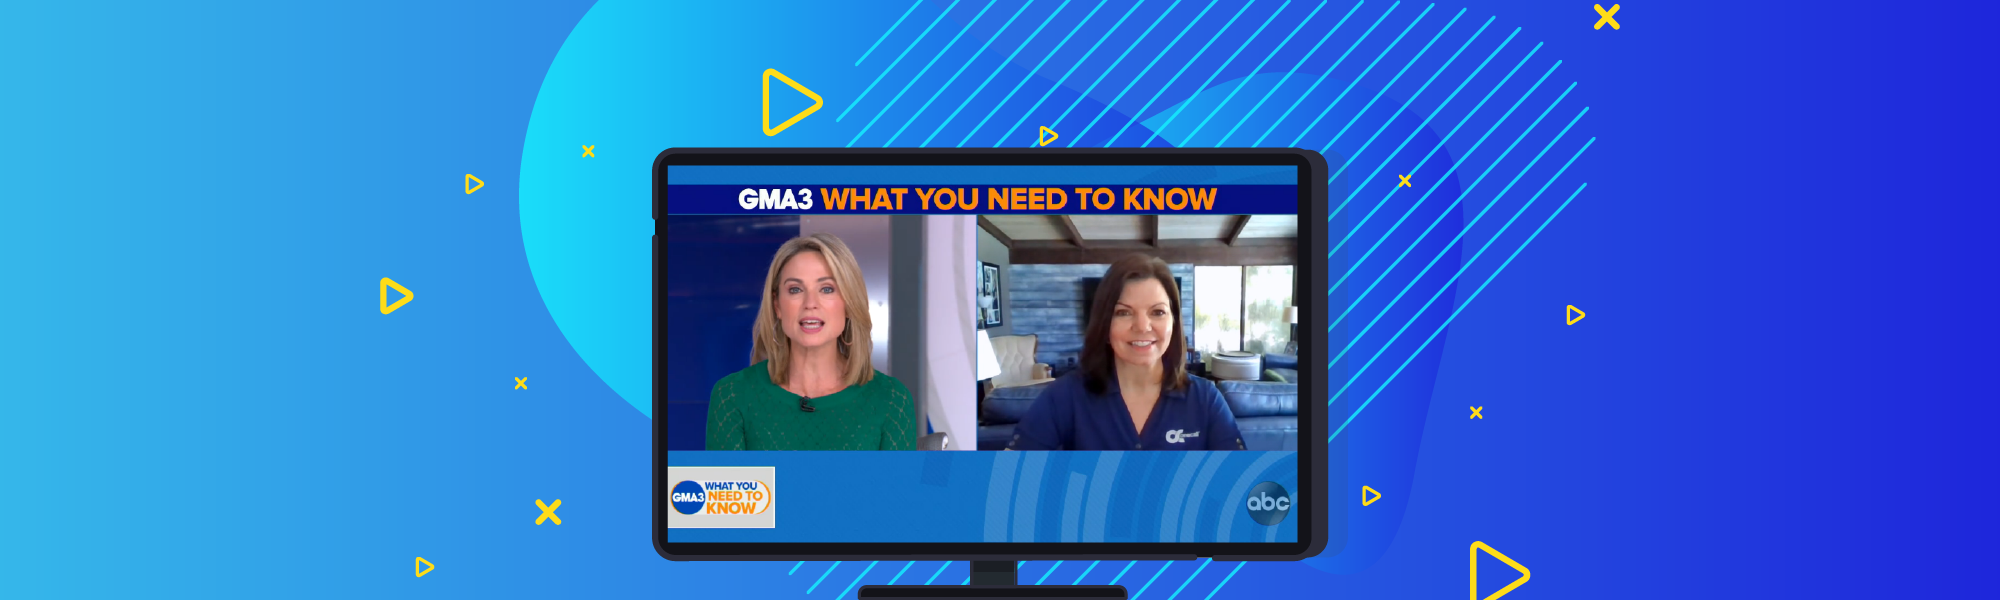 Michelle Despres on Good Morning America – Again!